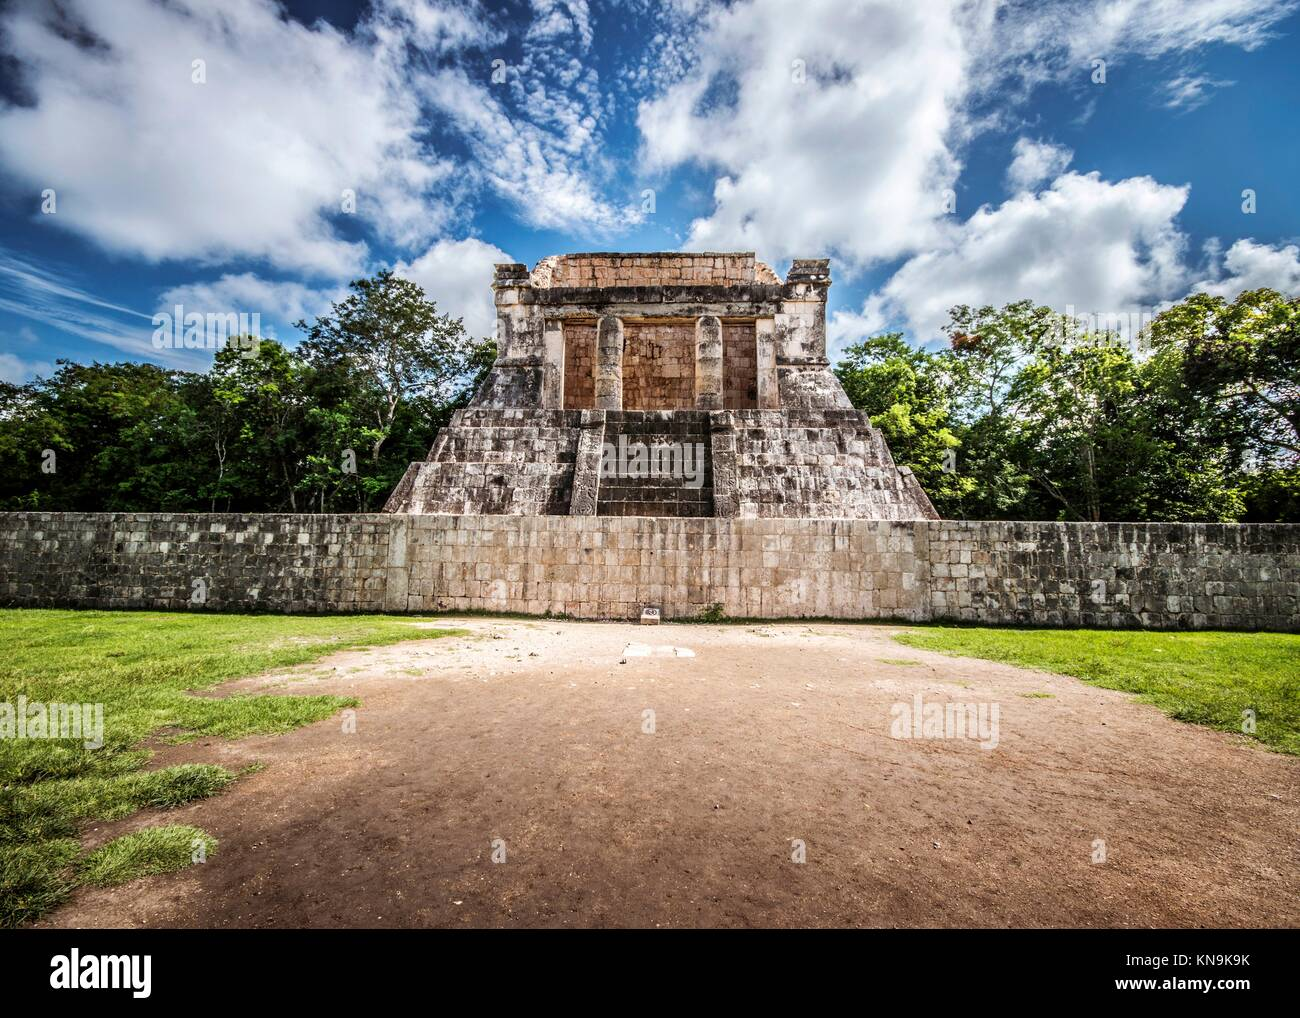 Tribune of the ball game in Chichen Itza (Mexico). - Stock Image